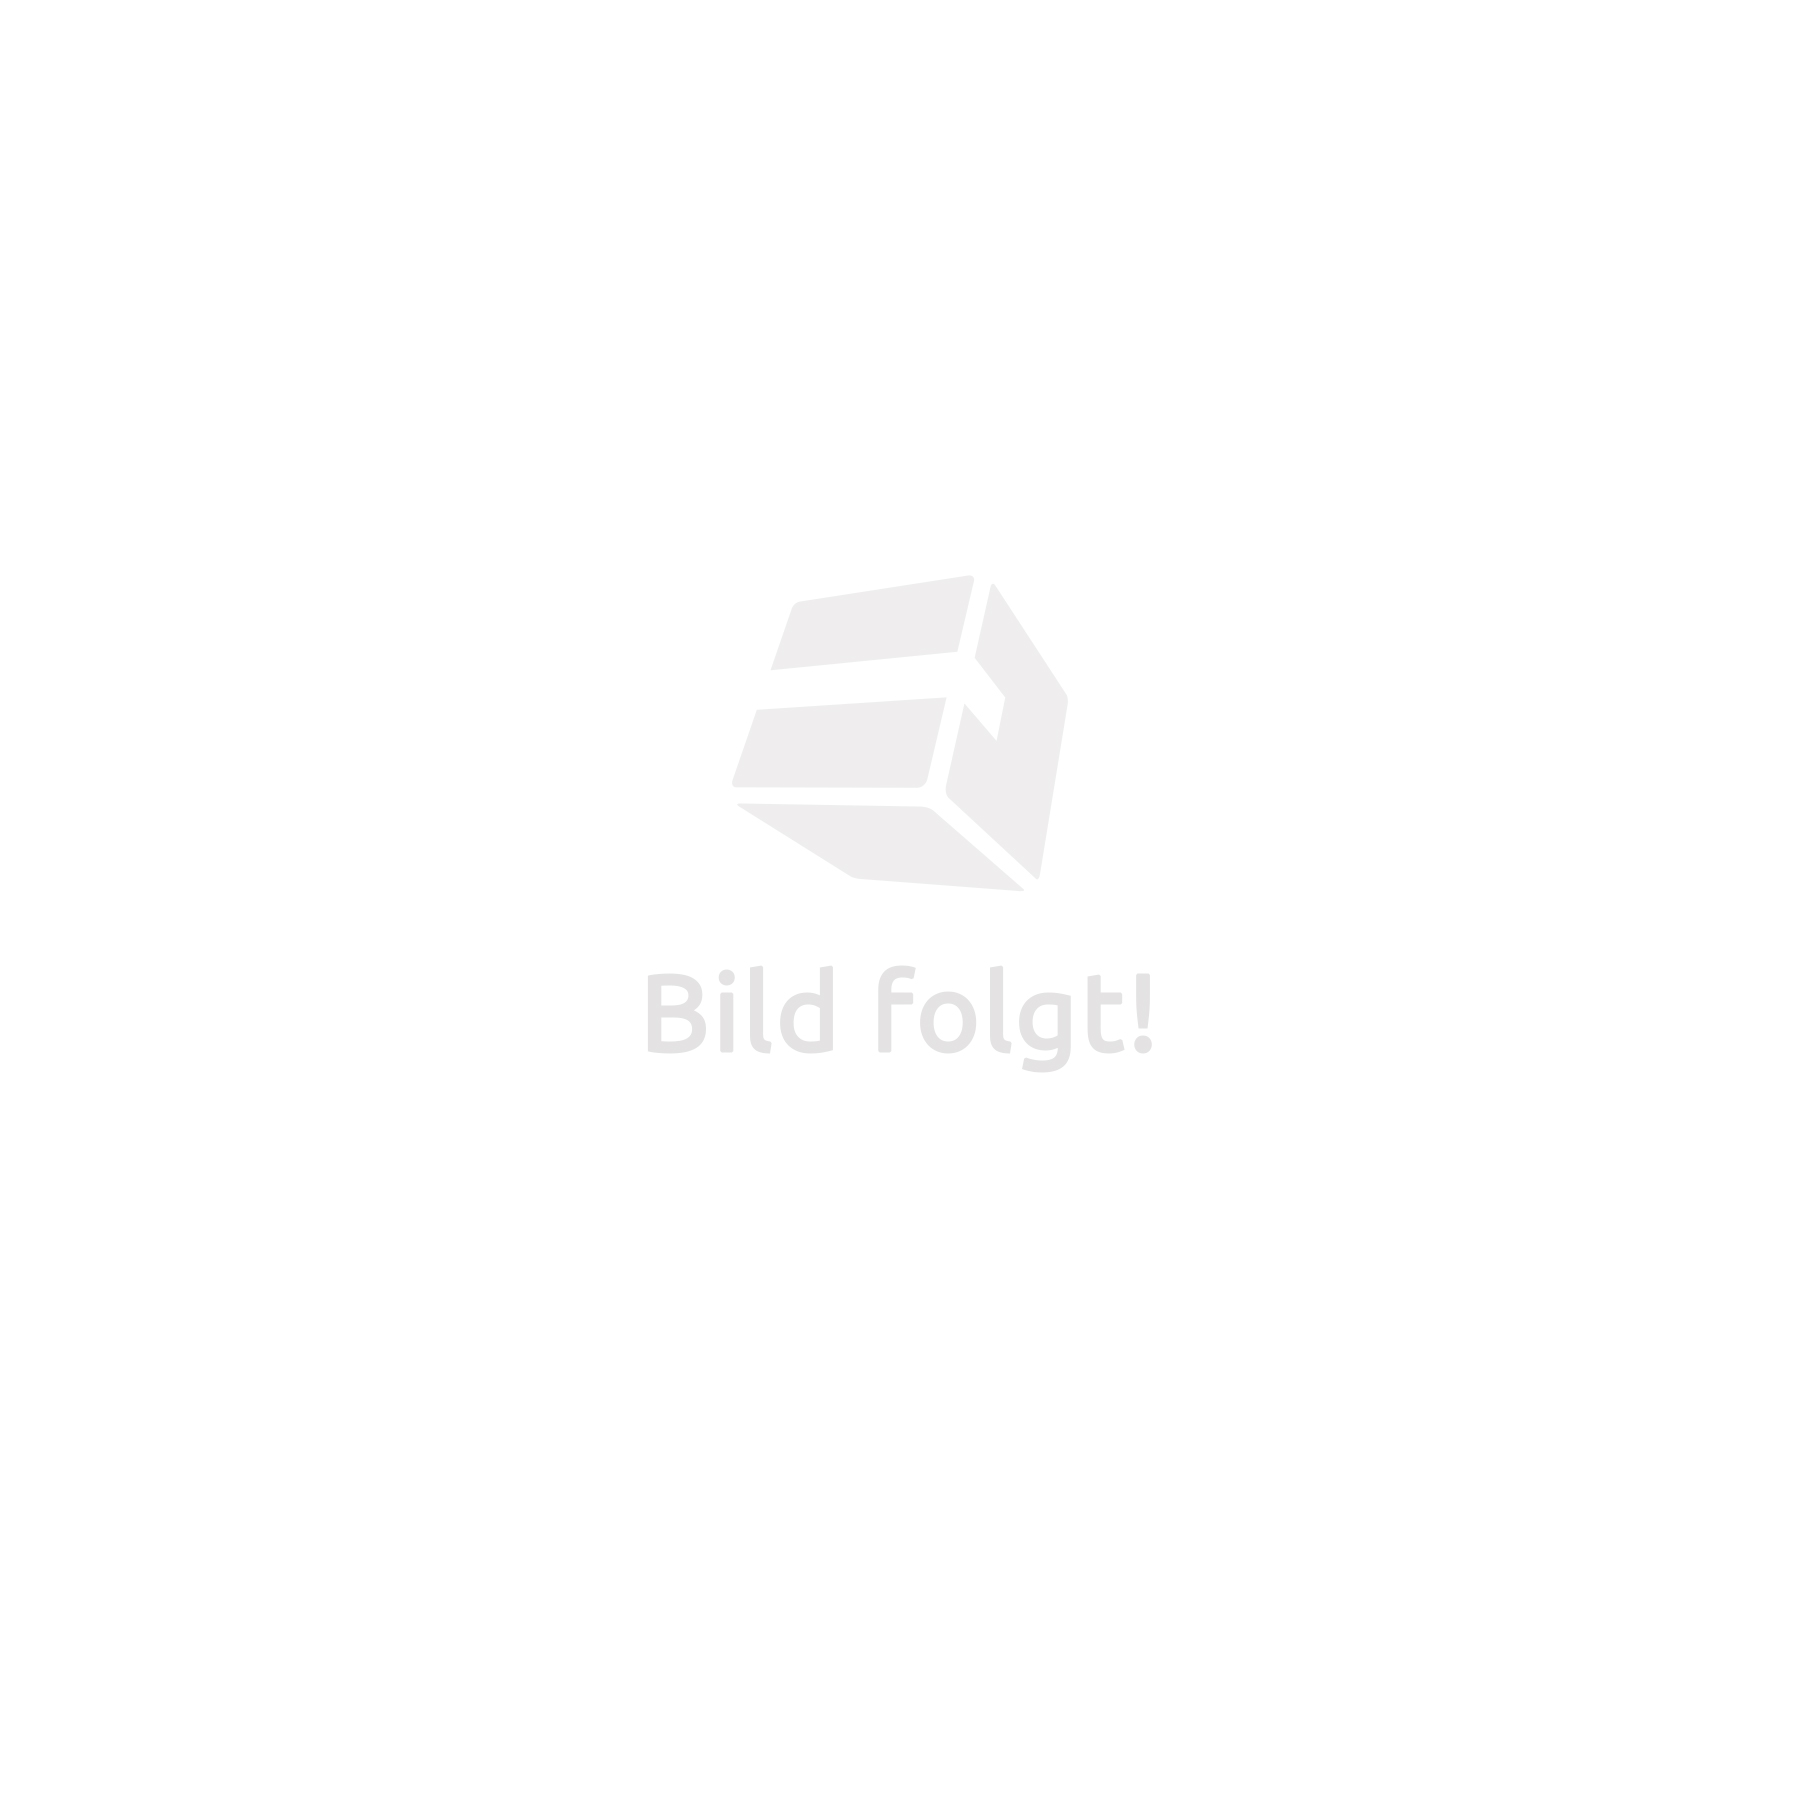 chauffage infrarouge en verre electrique 270 watt radiant. Black Bedroom Furniture Sets. Home Design Ideas